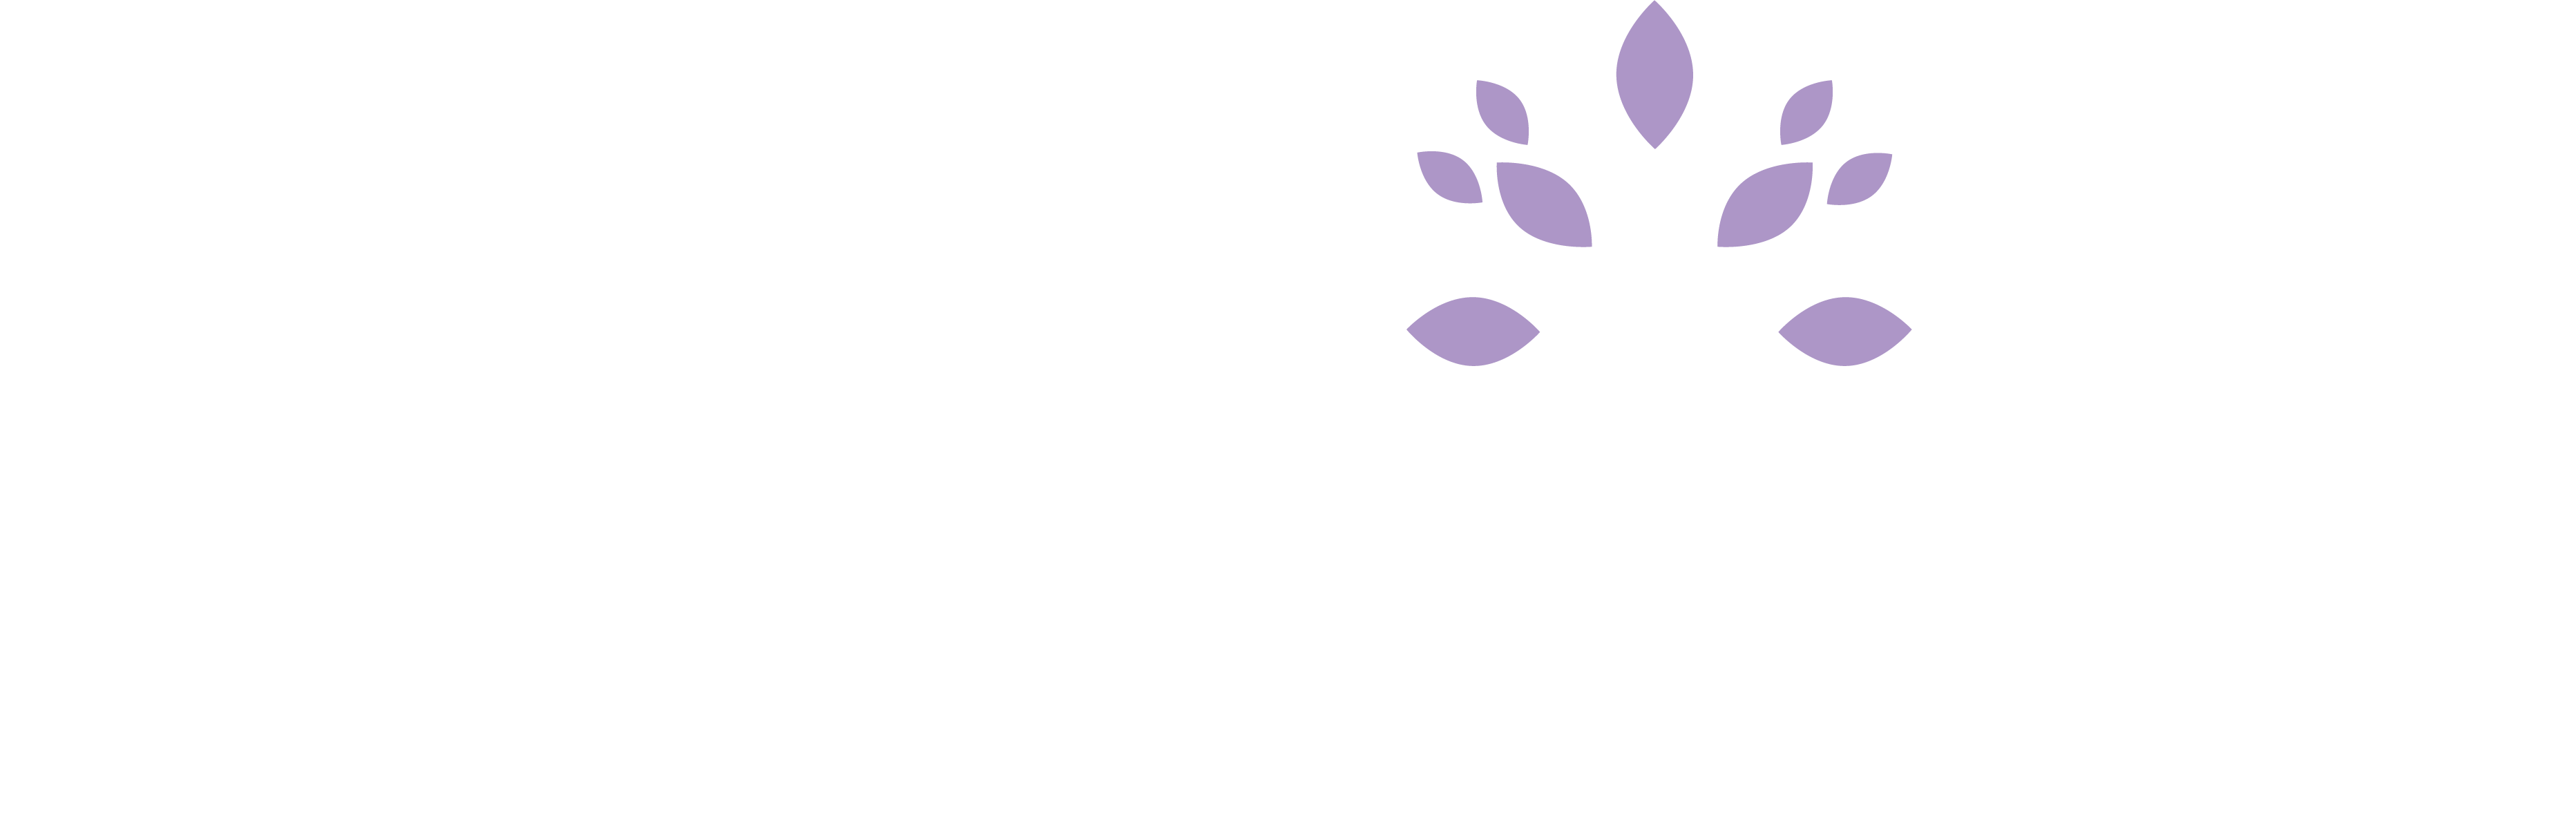 Sheltering Arms Tree logo reversed white purple